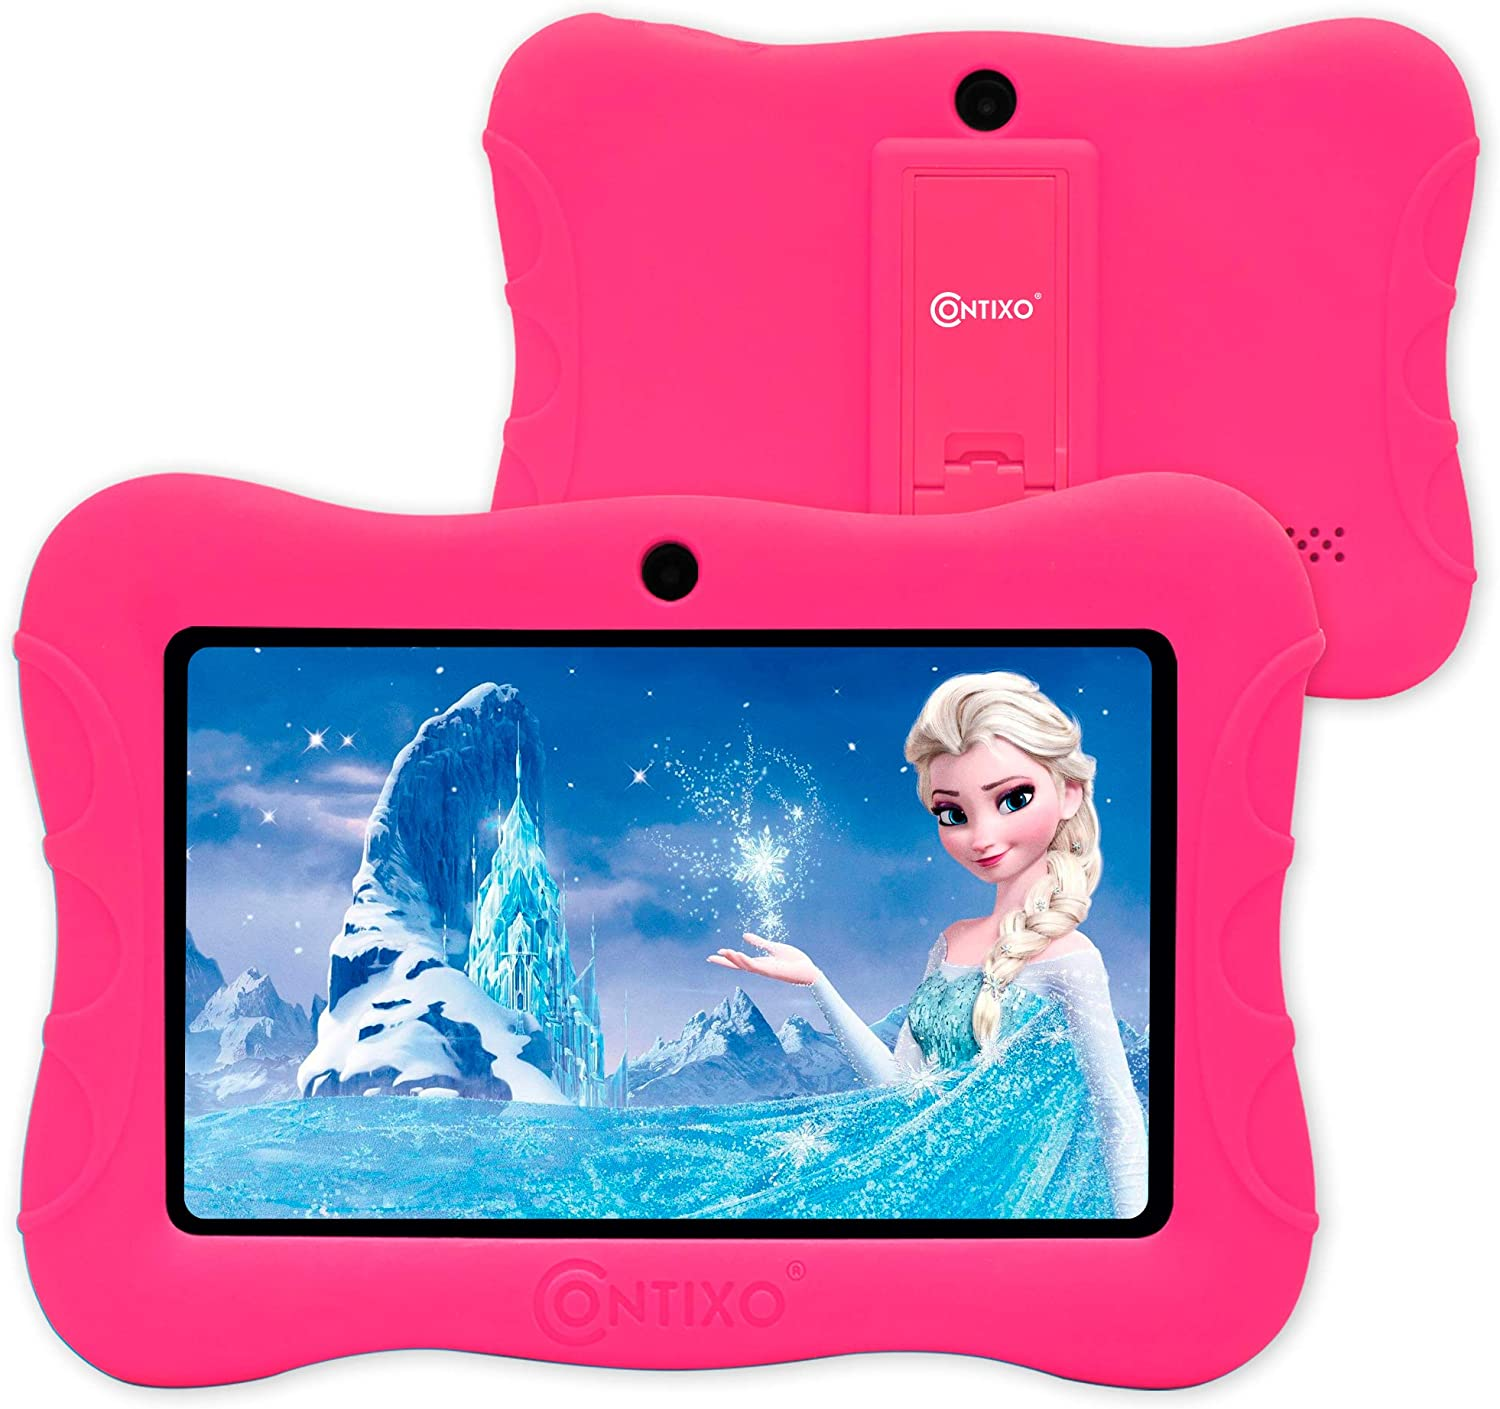 Contixo 5% OFF V9-3-32 7 Inch Kids Tablet 2GB Android RAM ROM 32 1 GB Max 77% OFF